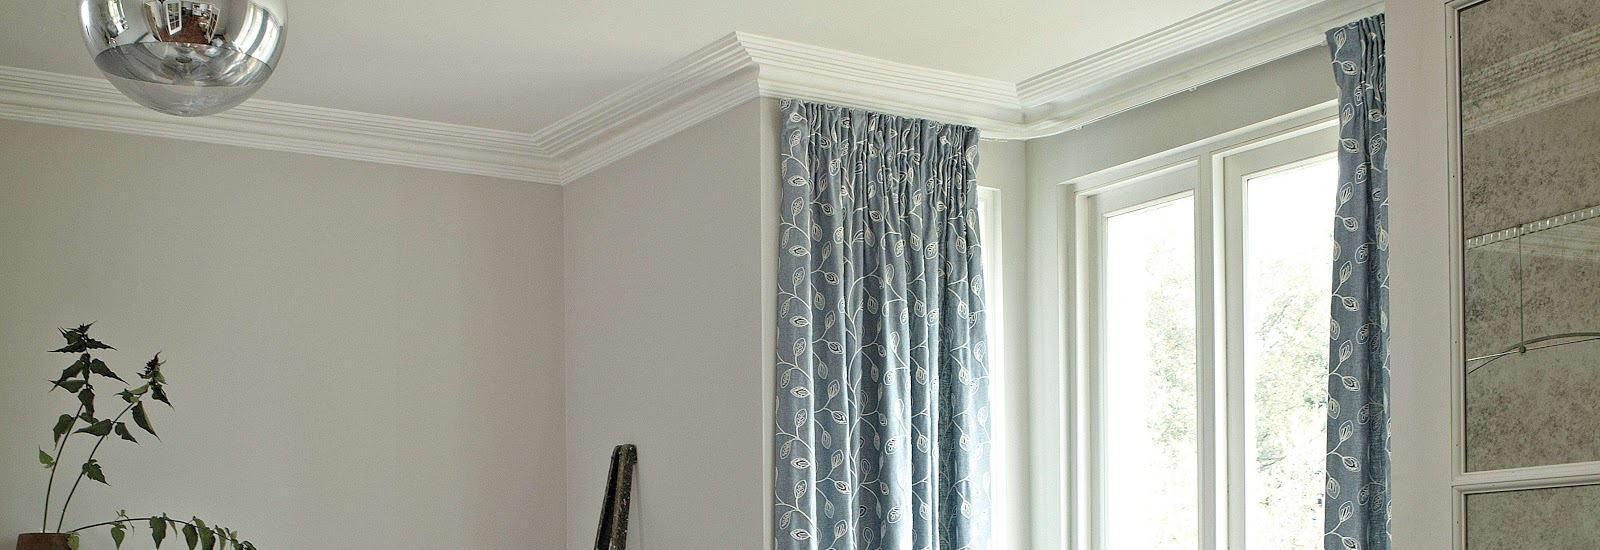 Custom Curtains & Blinds